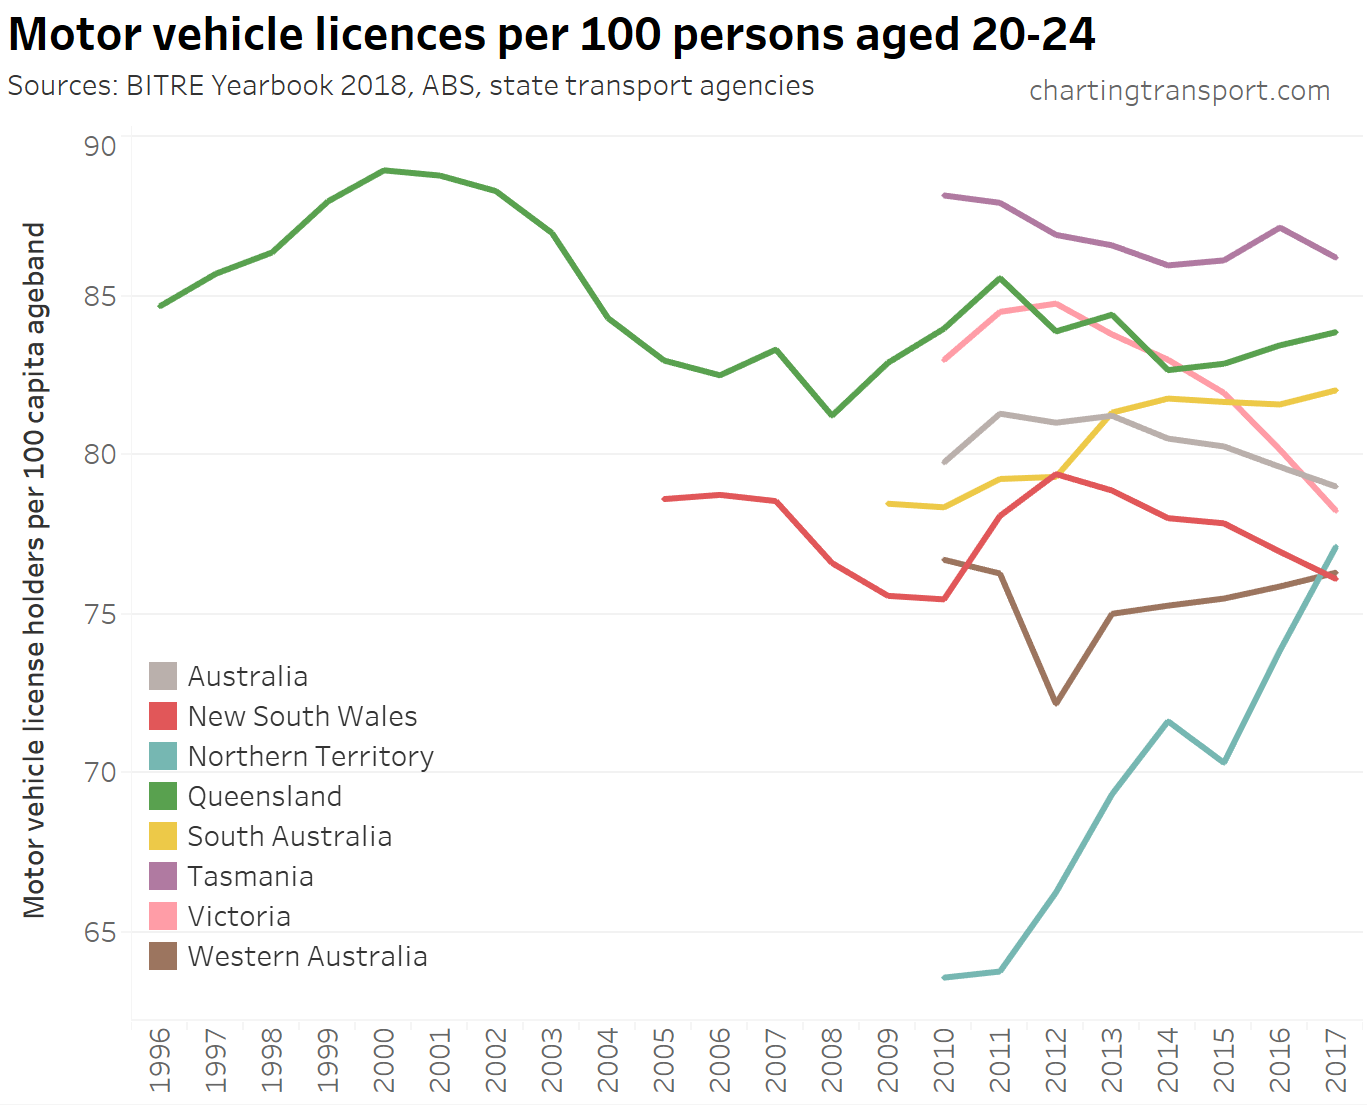 drivers license | Charting Transport